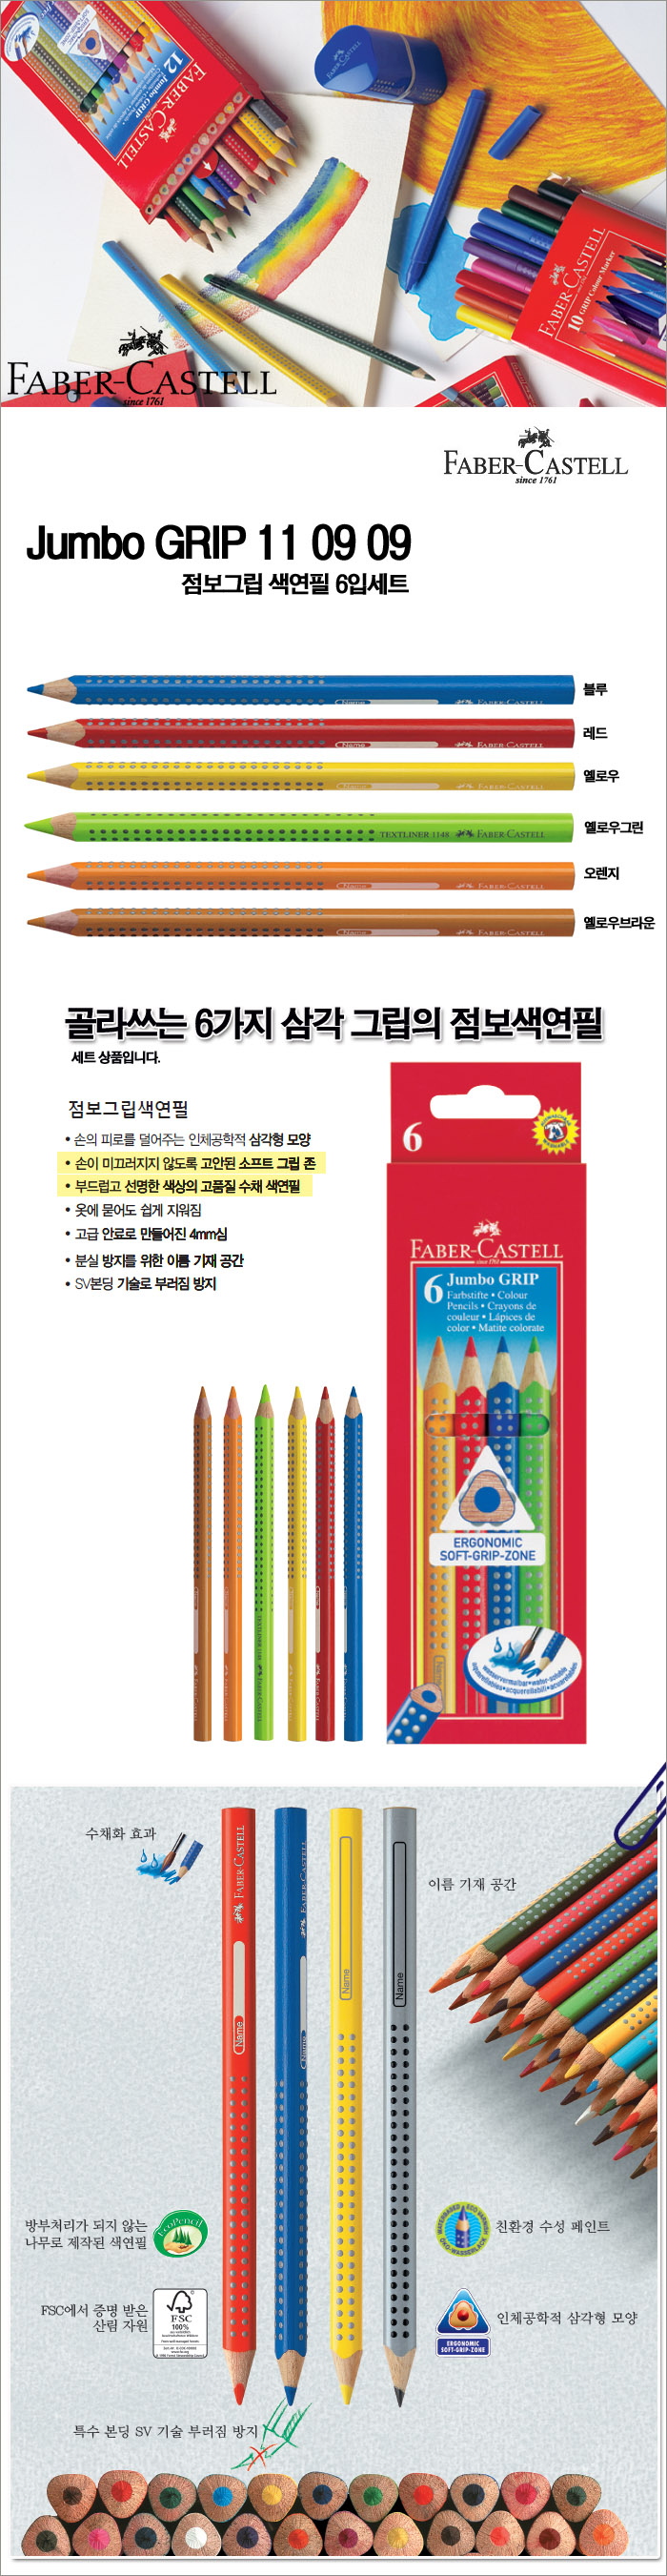 Faber-Castell Jumbo Grip Color Pencils